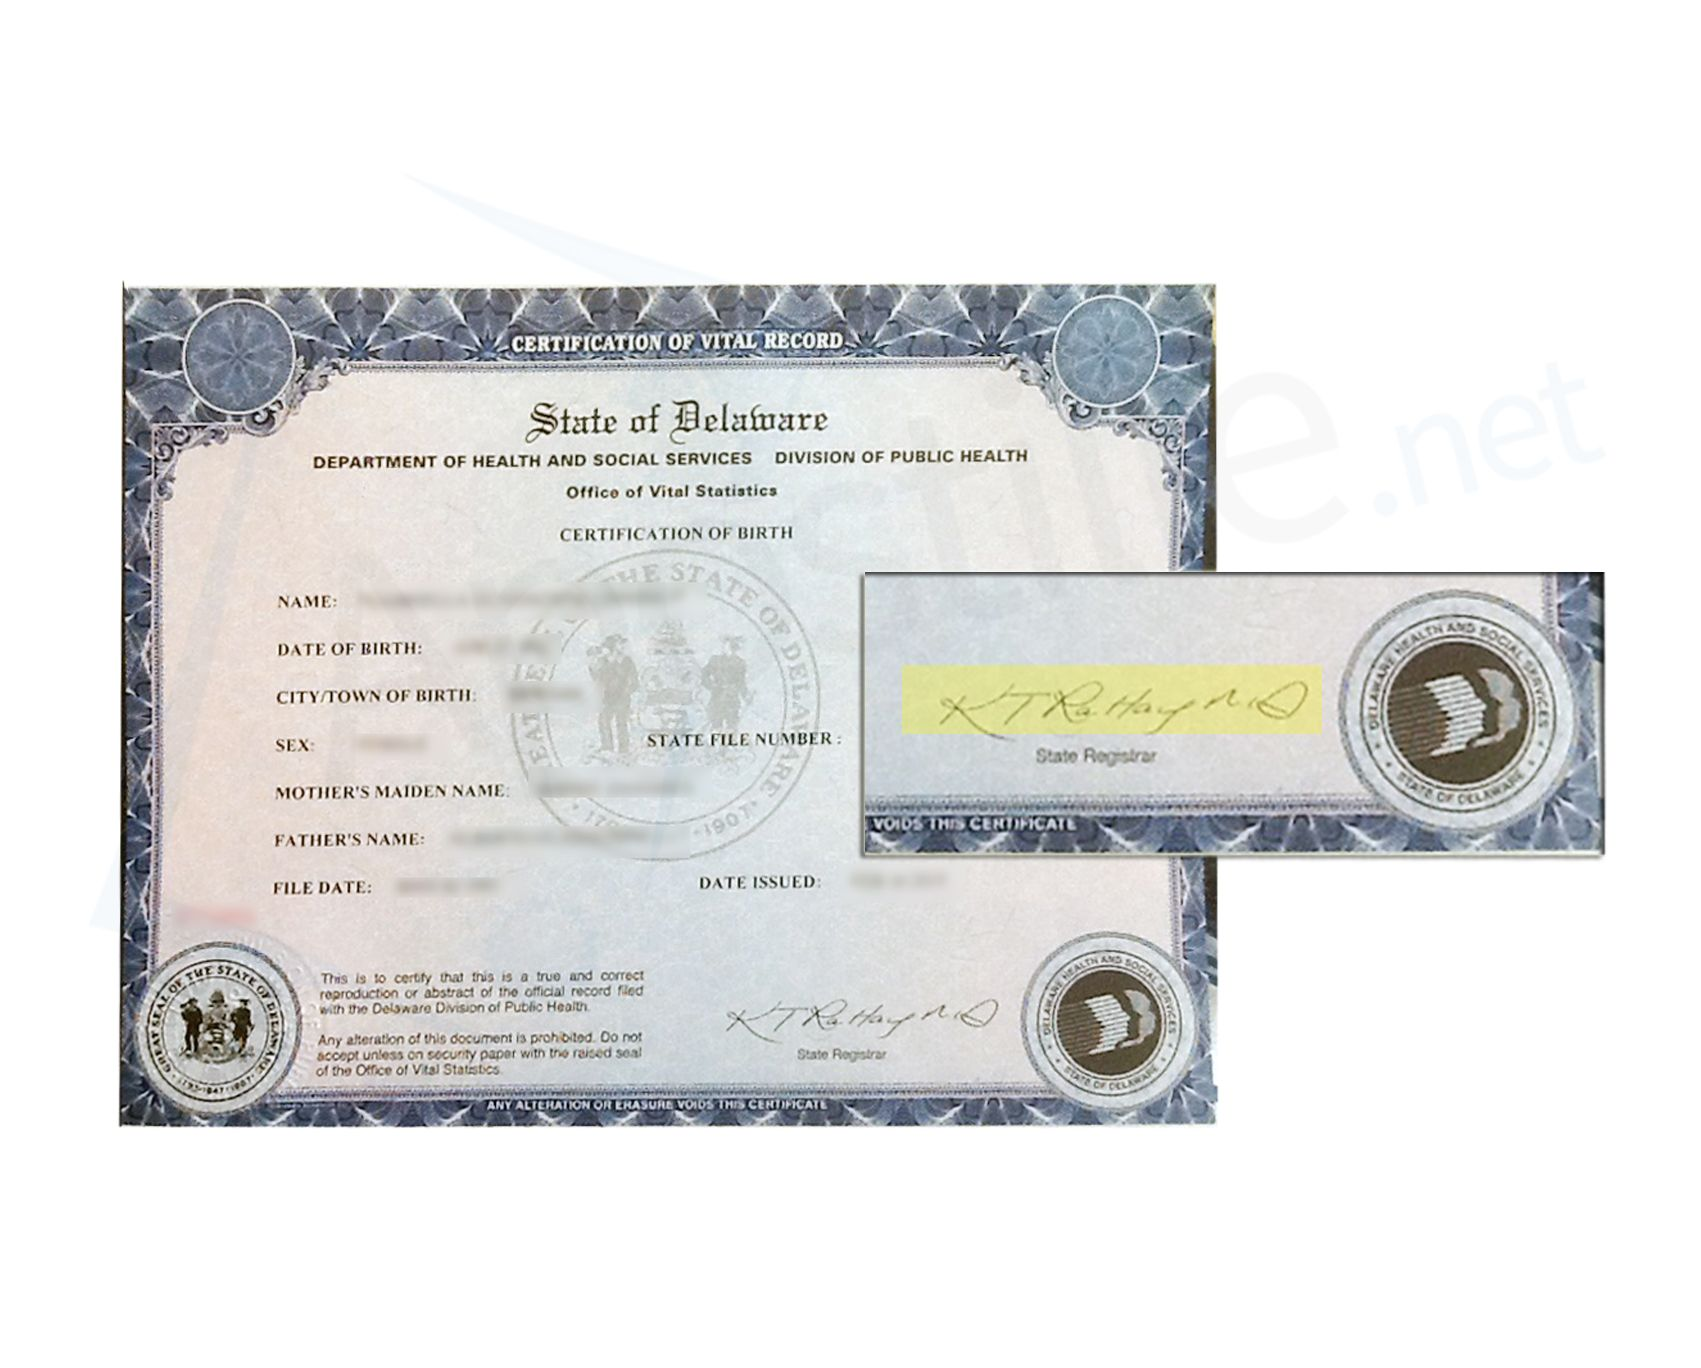 State Of Delaware Certification Of Birth Signed By Kary Thomas